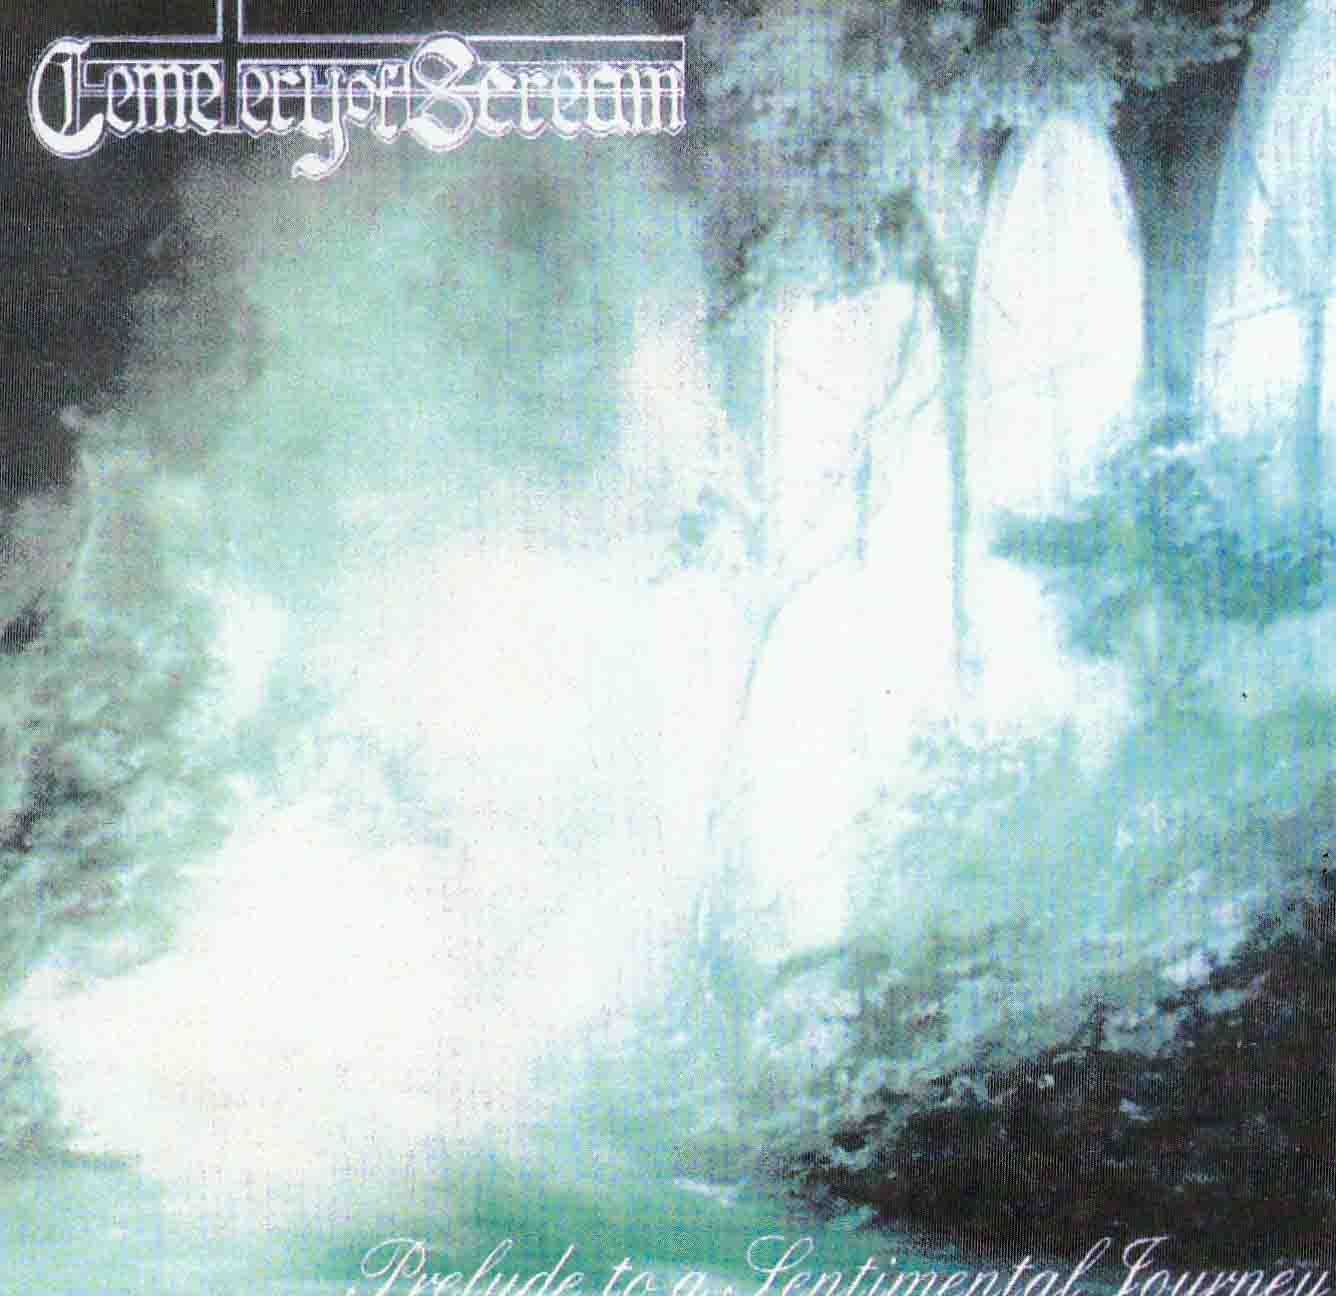 Cemetery Of Scream - Prelude To A Sentimental Journey